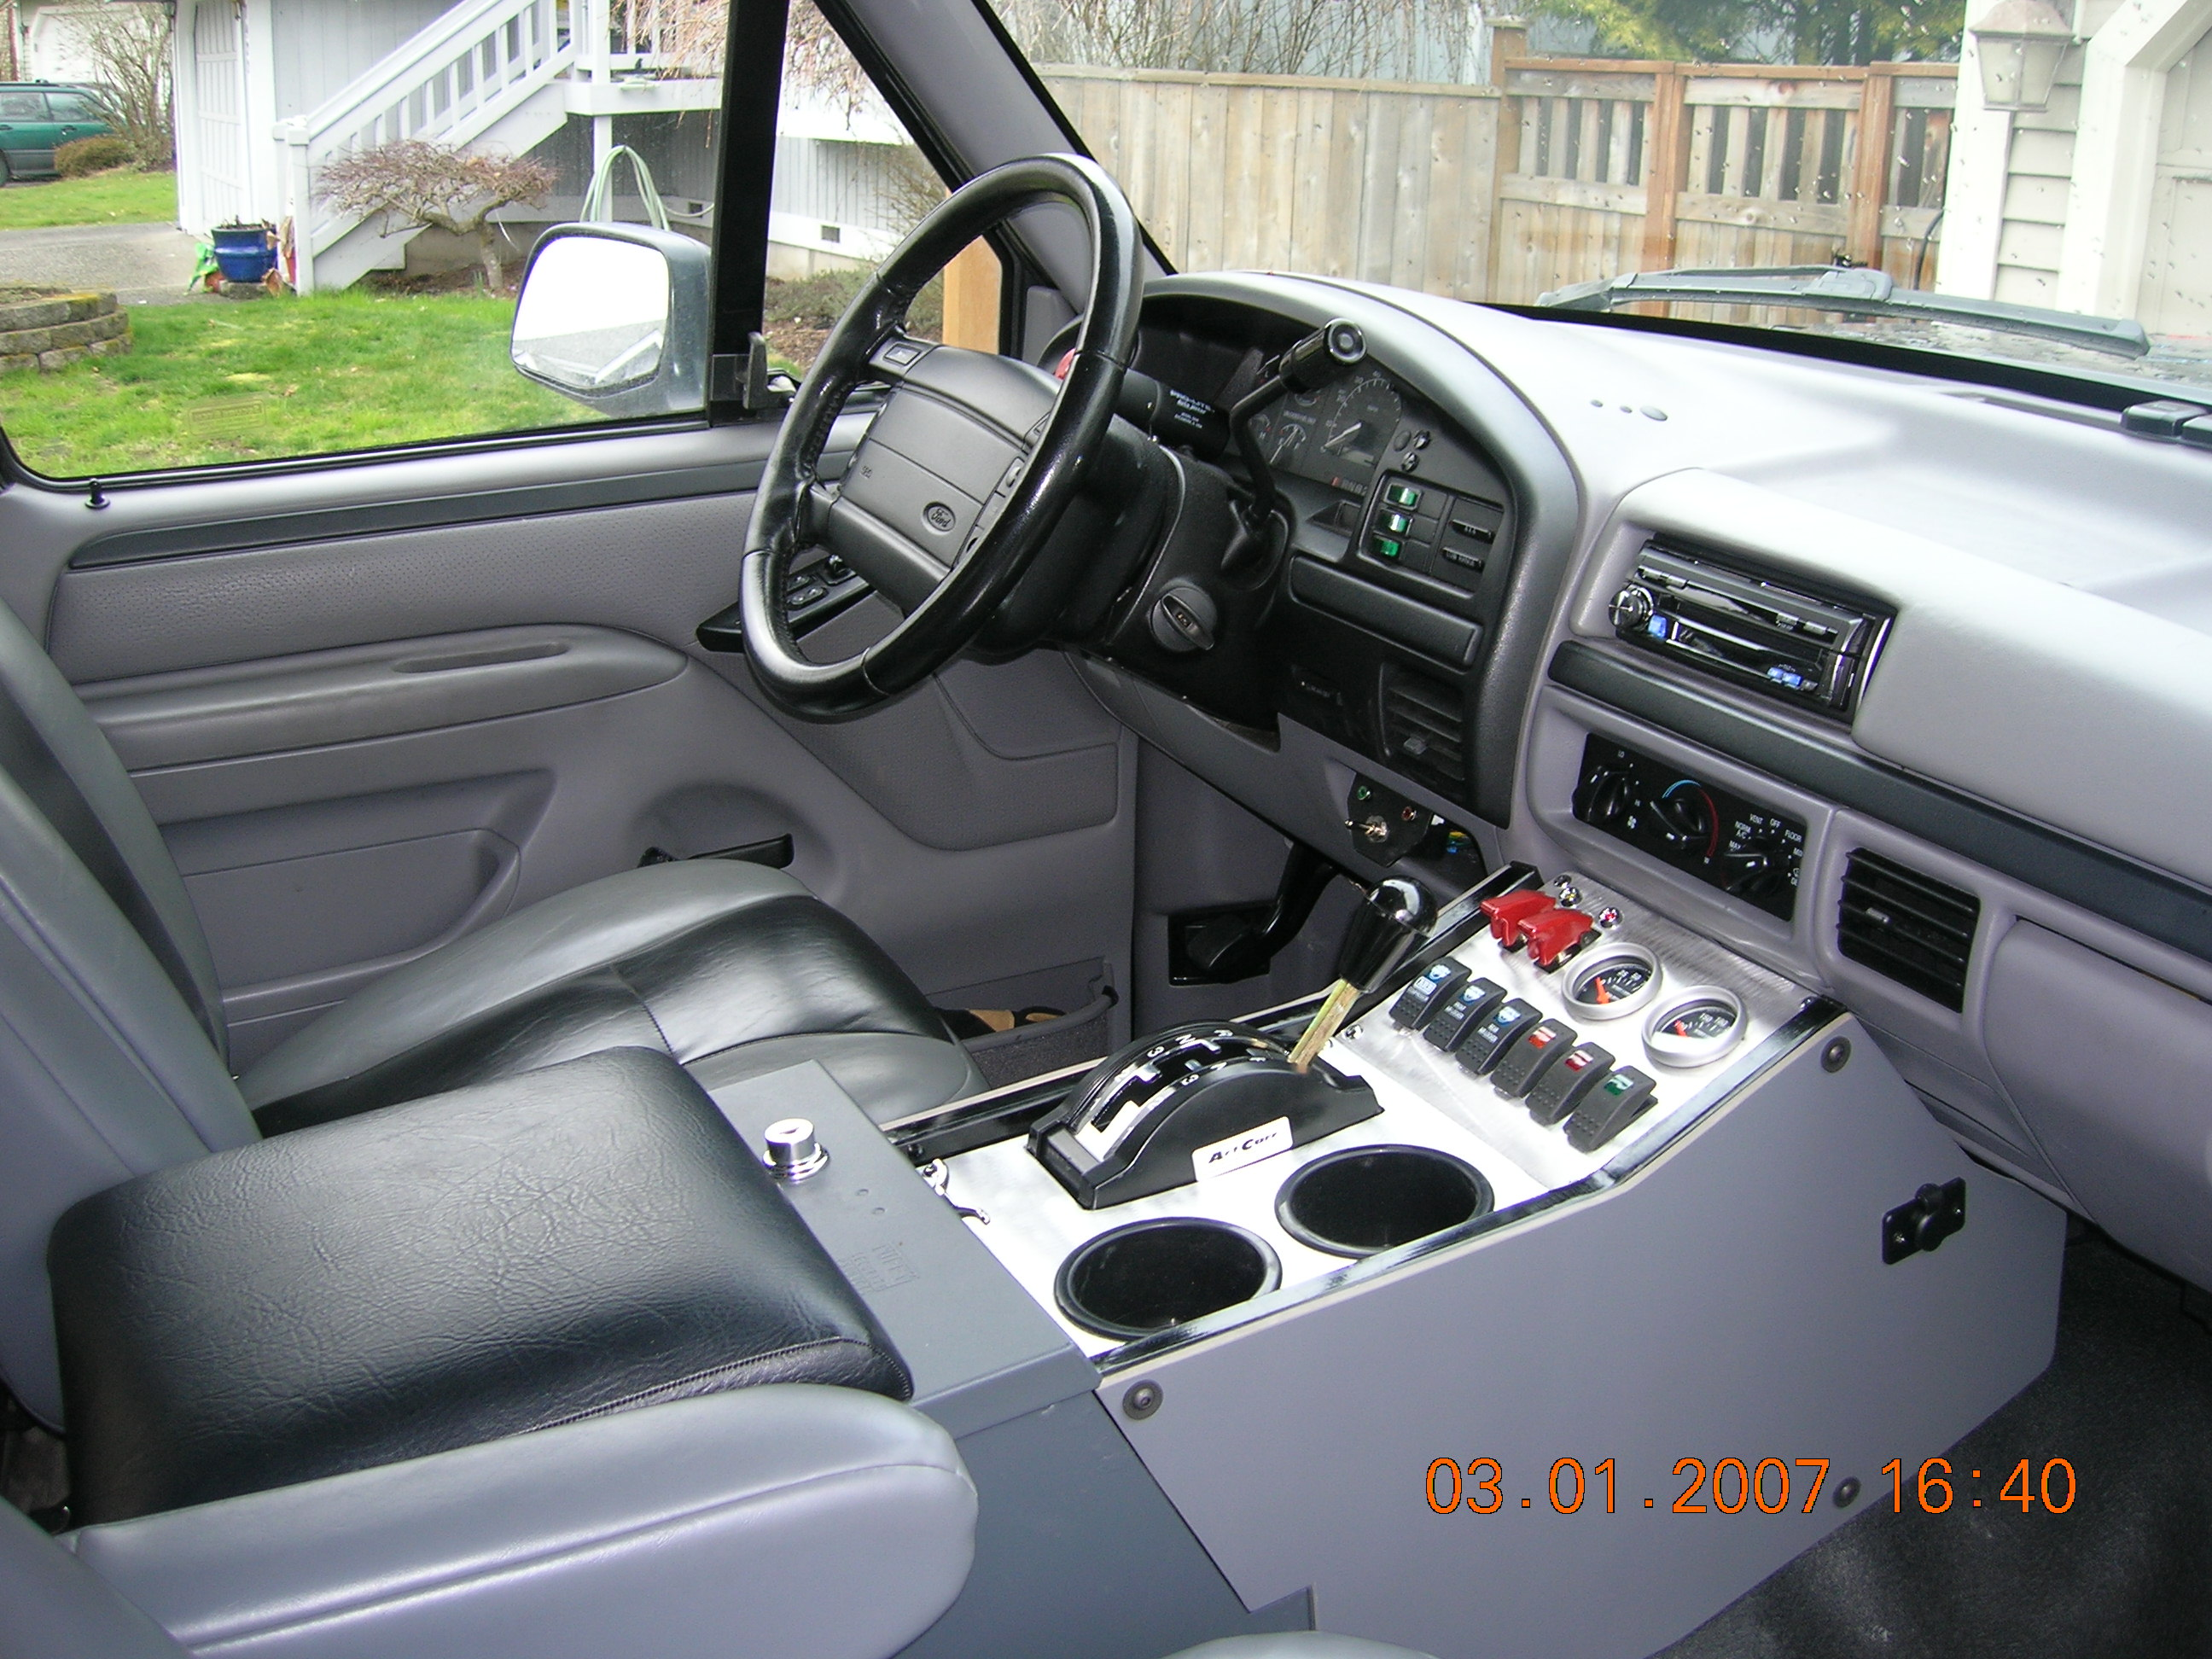 Beautiful 2013 Ford F150 Wiring Diagram Gallery Everything You likewise 490772 1 moreover Dodge Durango 2000 Electrical Circuit Wiring Diagram in addition Lincoln Aviator Stereo Wiring Diagram also Car Stereo Wiring Diagram Auto Diagrams Of Excellent Aftermarket Color That Amazing The Smart Snapshot Like 994. on 2003 ford radio wiring diagram